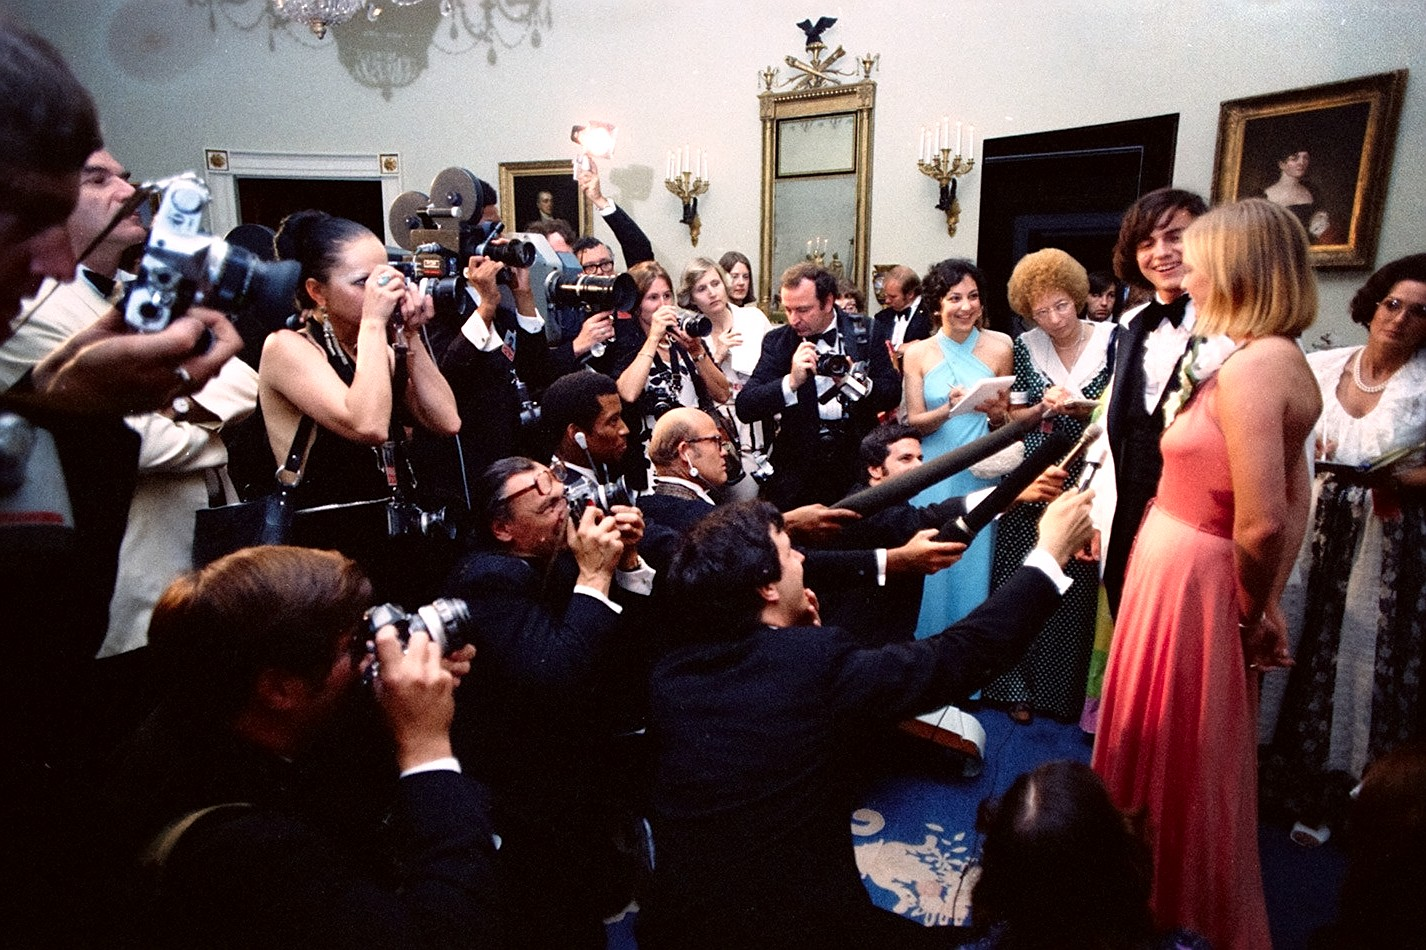 Great Moments in Event History: Prom at the White House